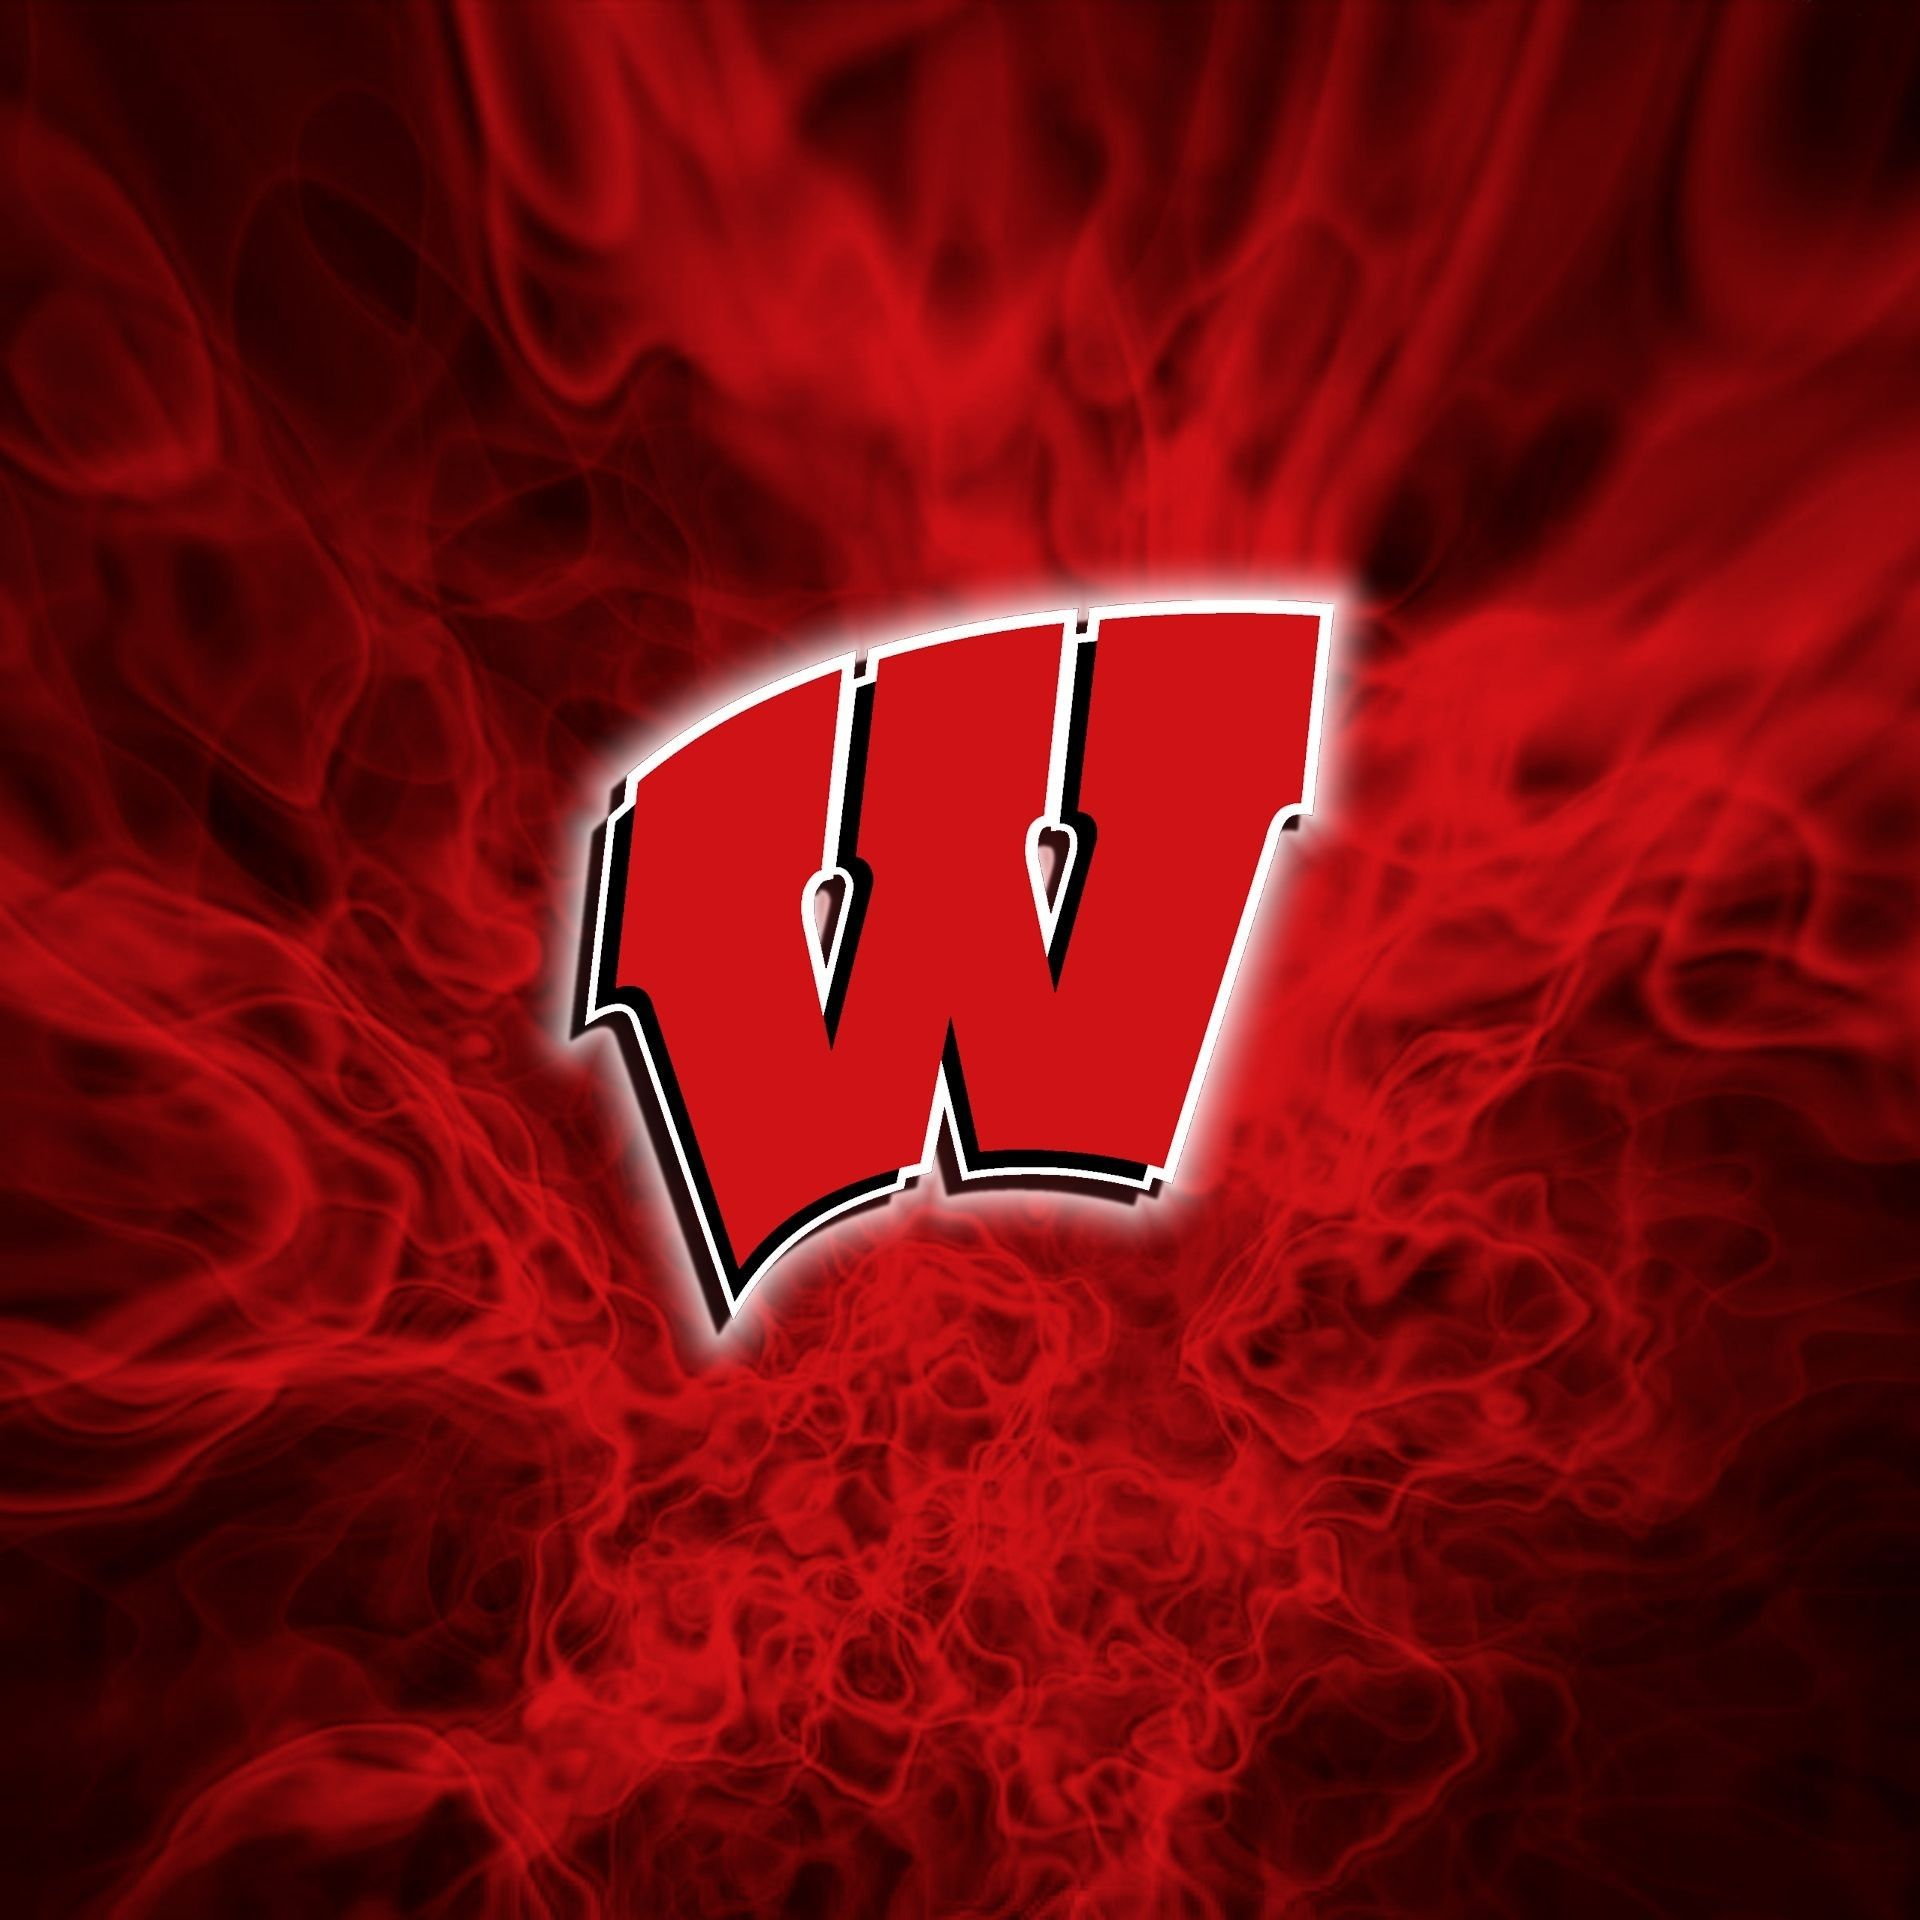 62 Wisconsin Badger Wallpapers On Wallpaperplay Wisconsin Badgers Wisconsin Badgers Football Wisconsin Badgers Basketball